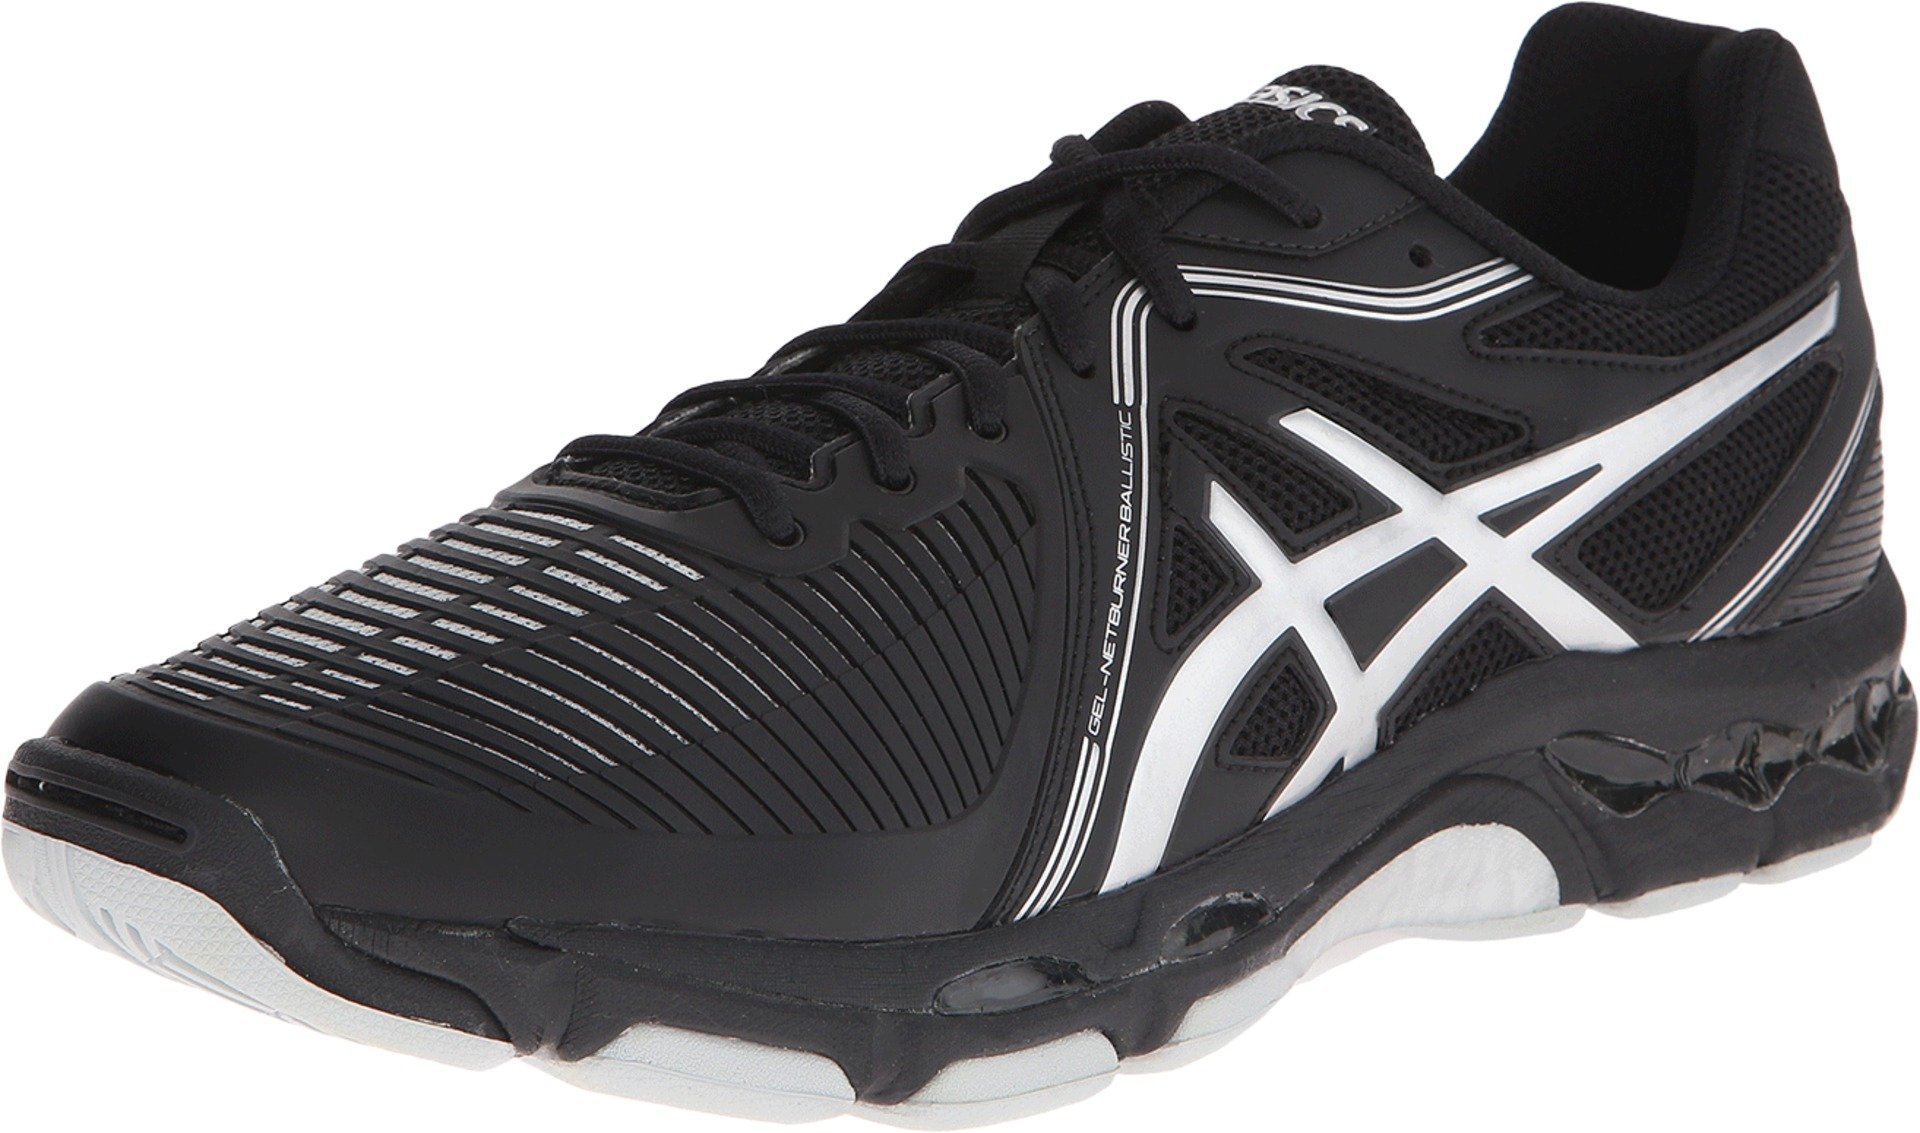 ASICS Men's Gel-Netburner Ballistic Volleyball Shoe, Black/Silver, 6 M US